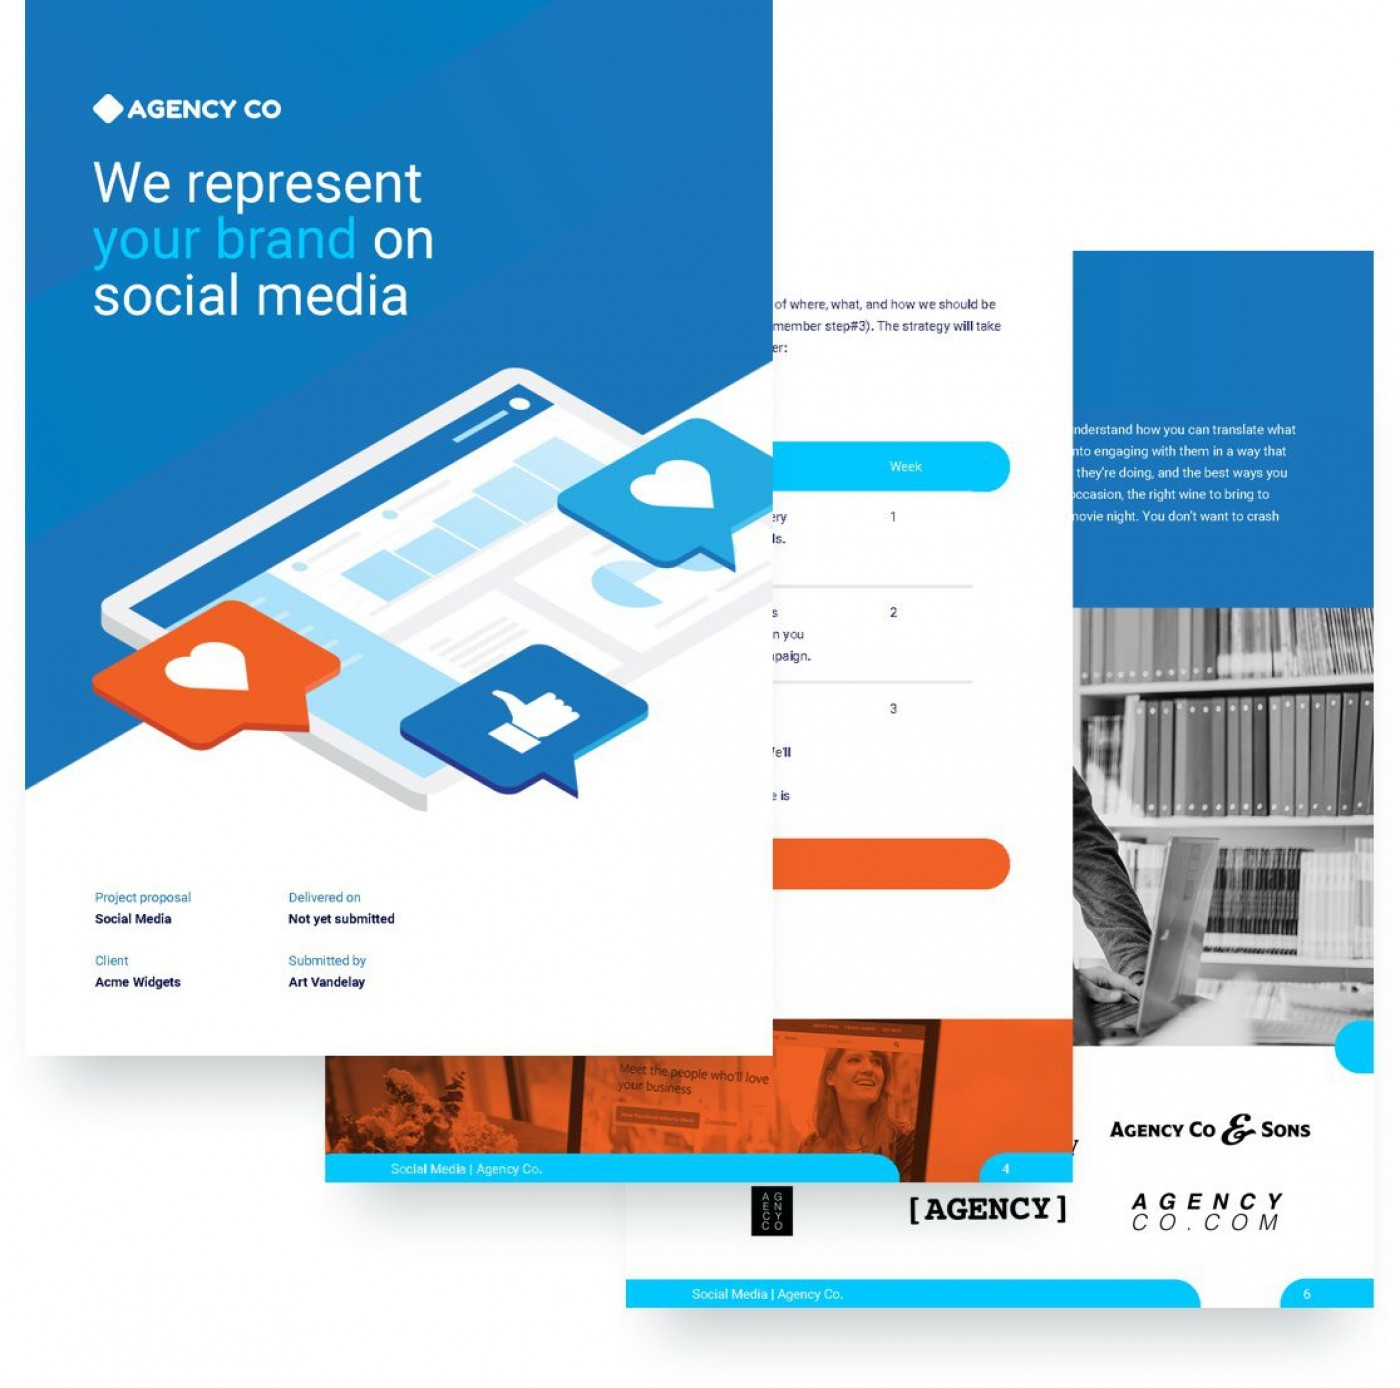 008 Fearsome Social Media Proposal Template High Definition  Plan Sample Pdf 20181400